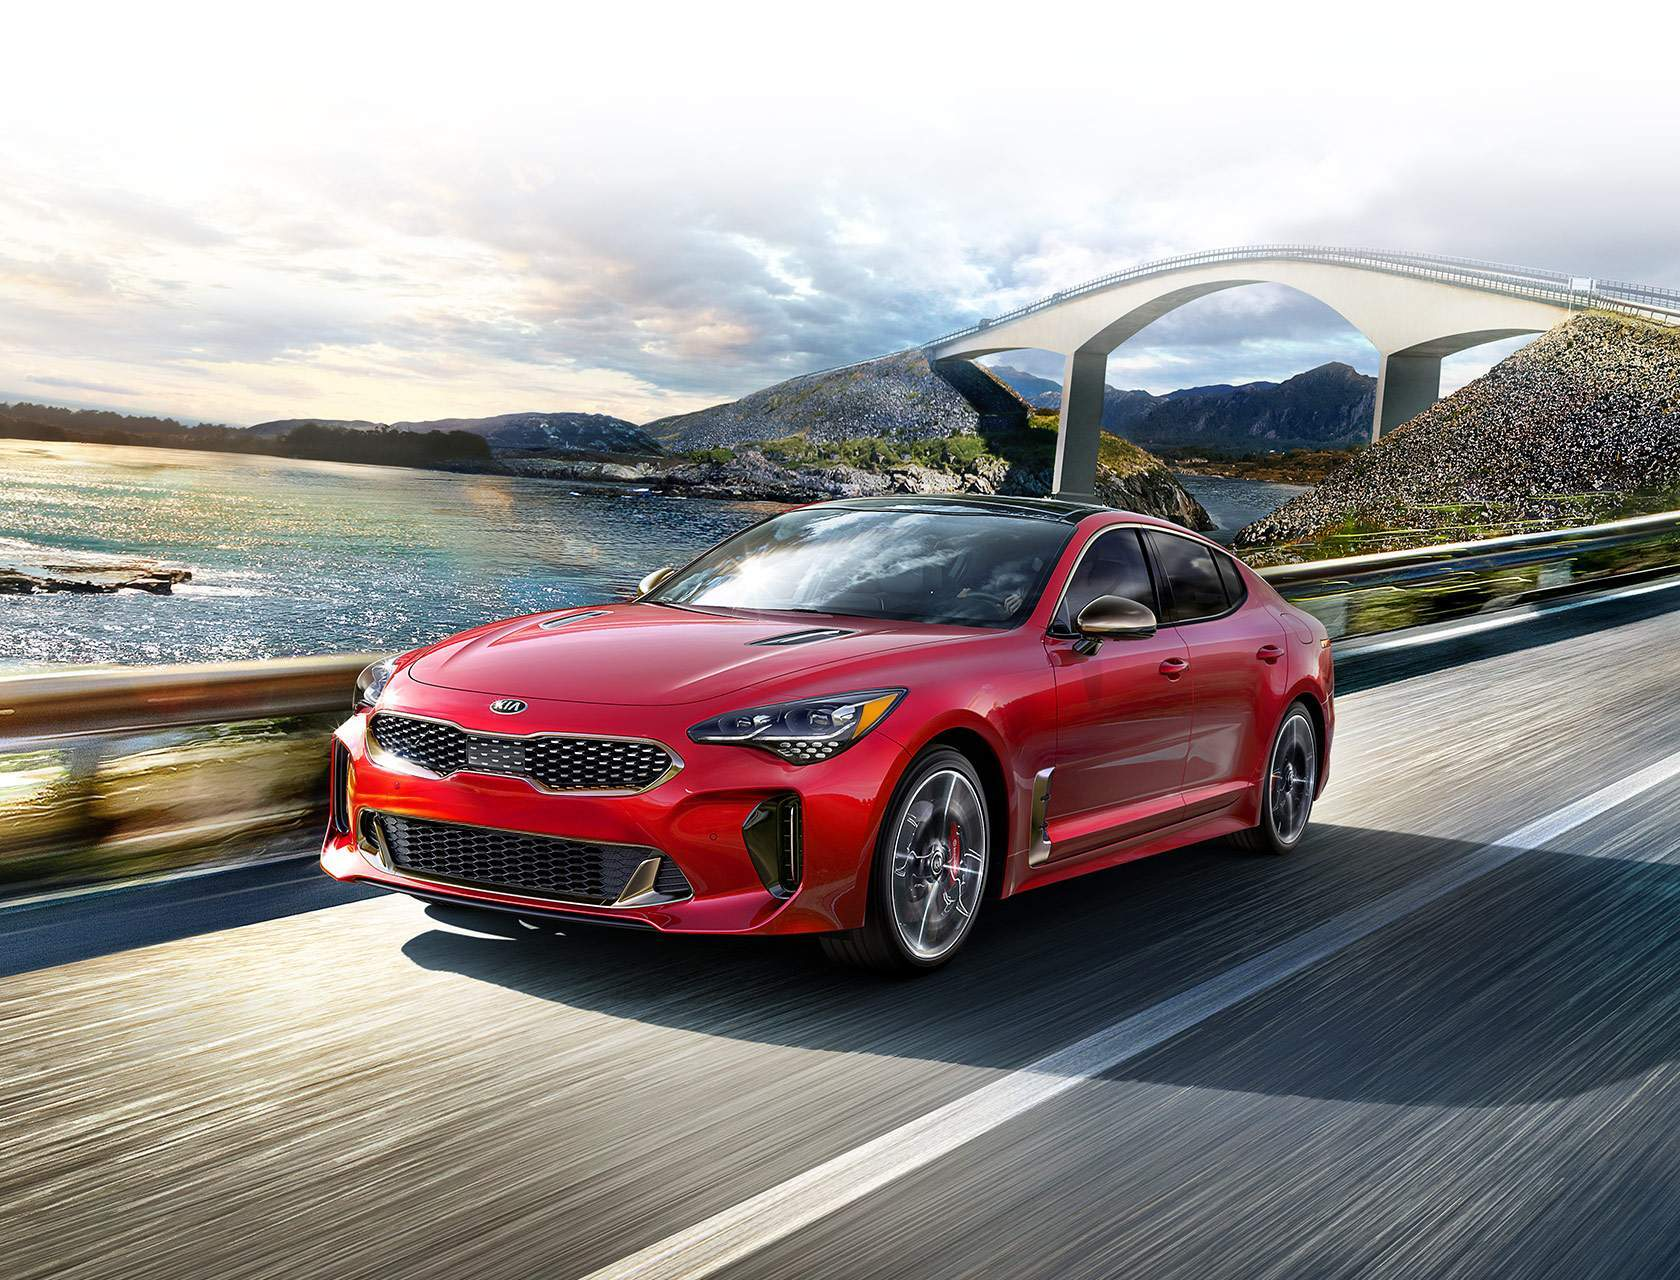 2019 Kia Stinger in Yakima, WA